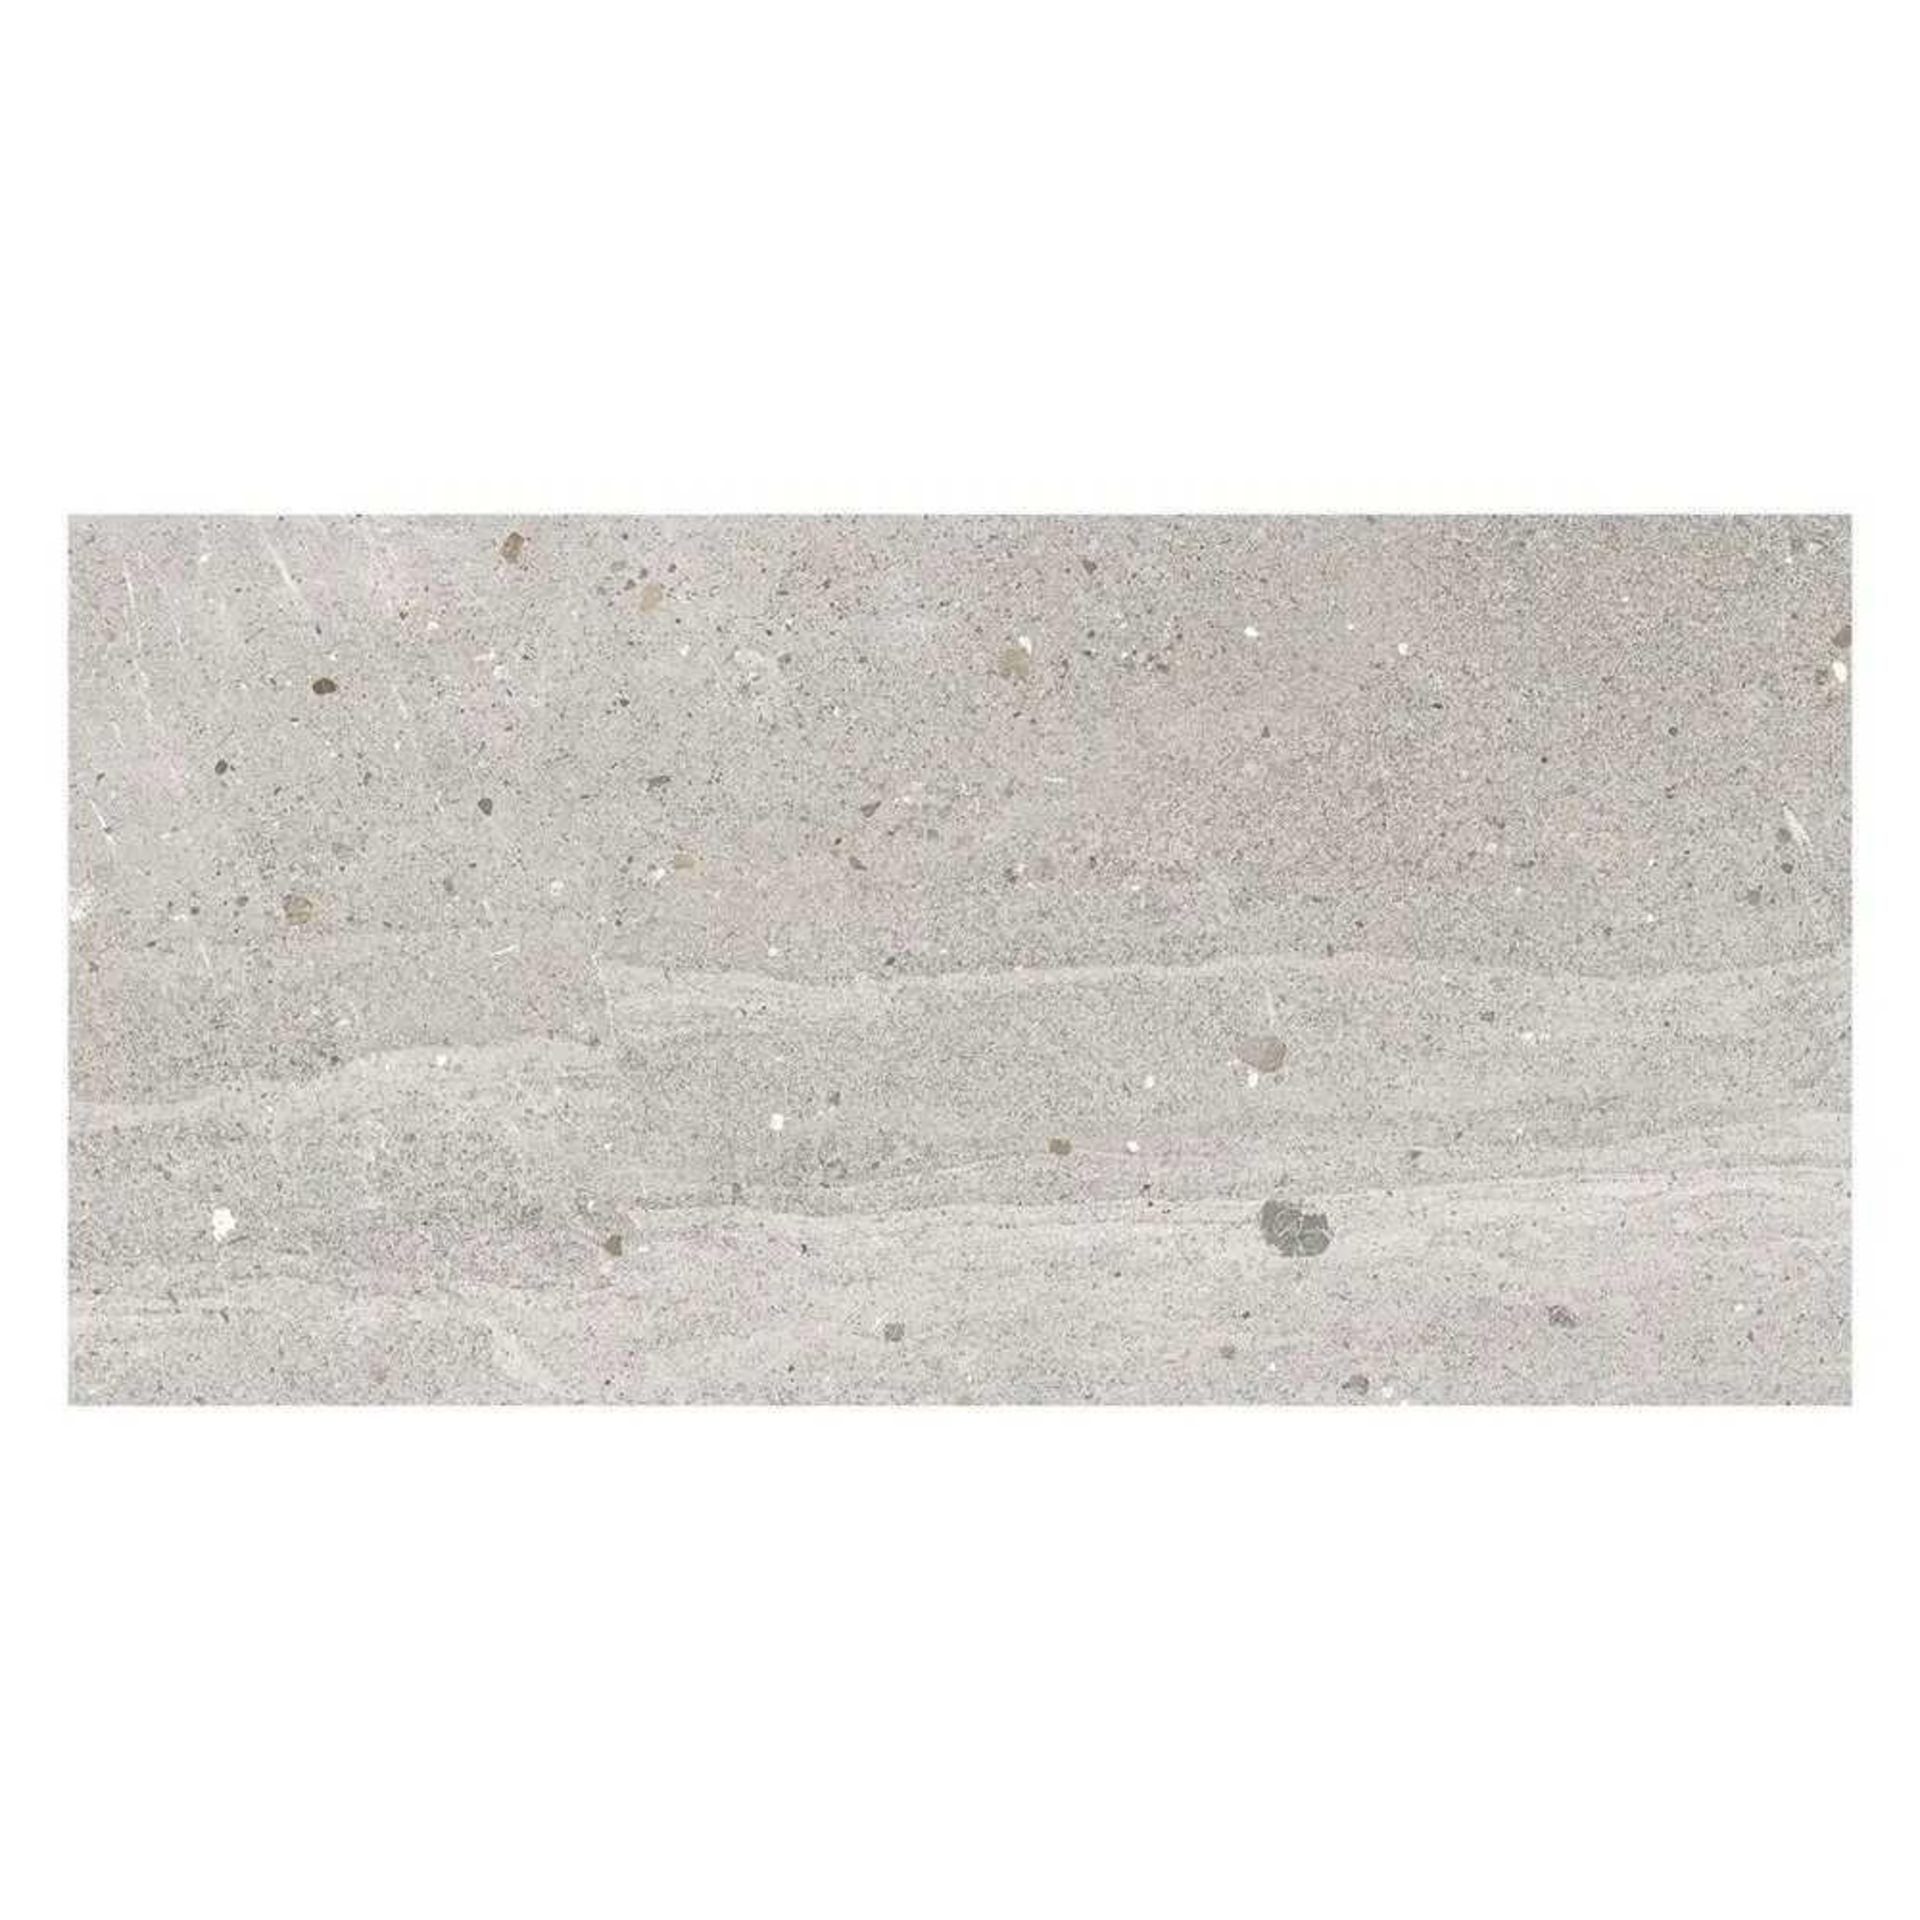 RRP £1400 Pallet To Contain 40 Brand New Packs Of 5 Johnson's Cong2A Classic Grey Matt Tiles (